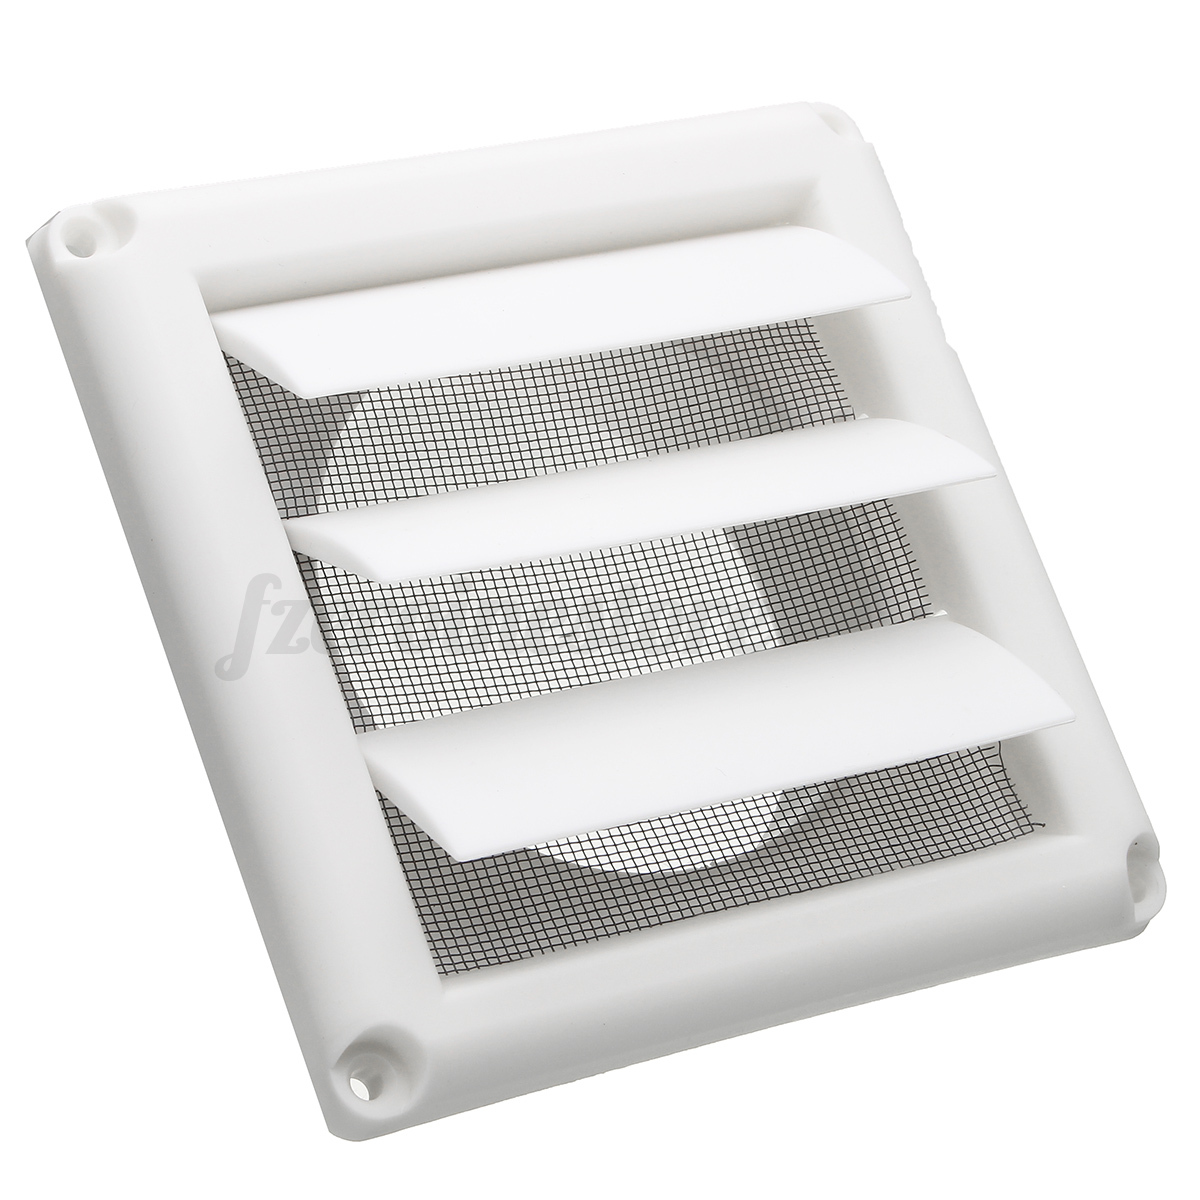 plastic air vent grille cover 3 gravity flaps wall ventilation grille with net ebay. Black Bedroom Furniture Sets. Home Design Ideas